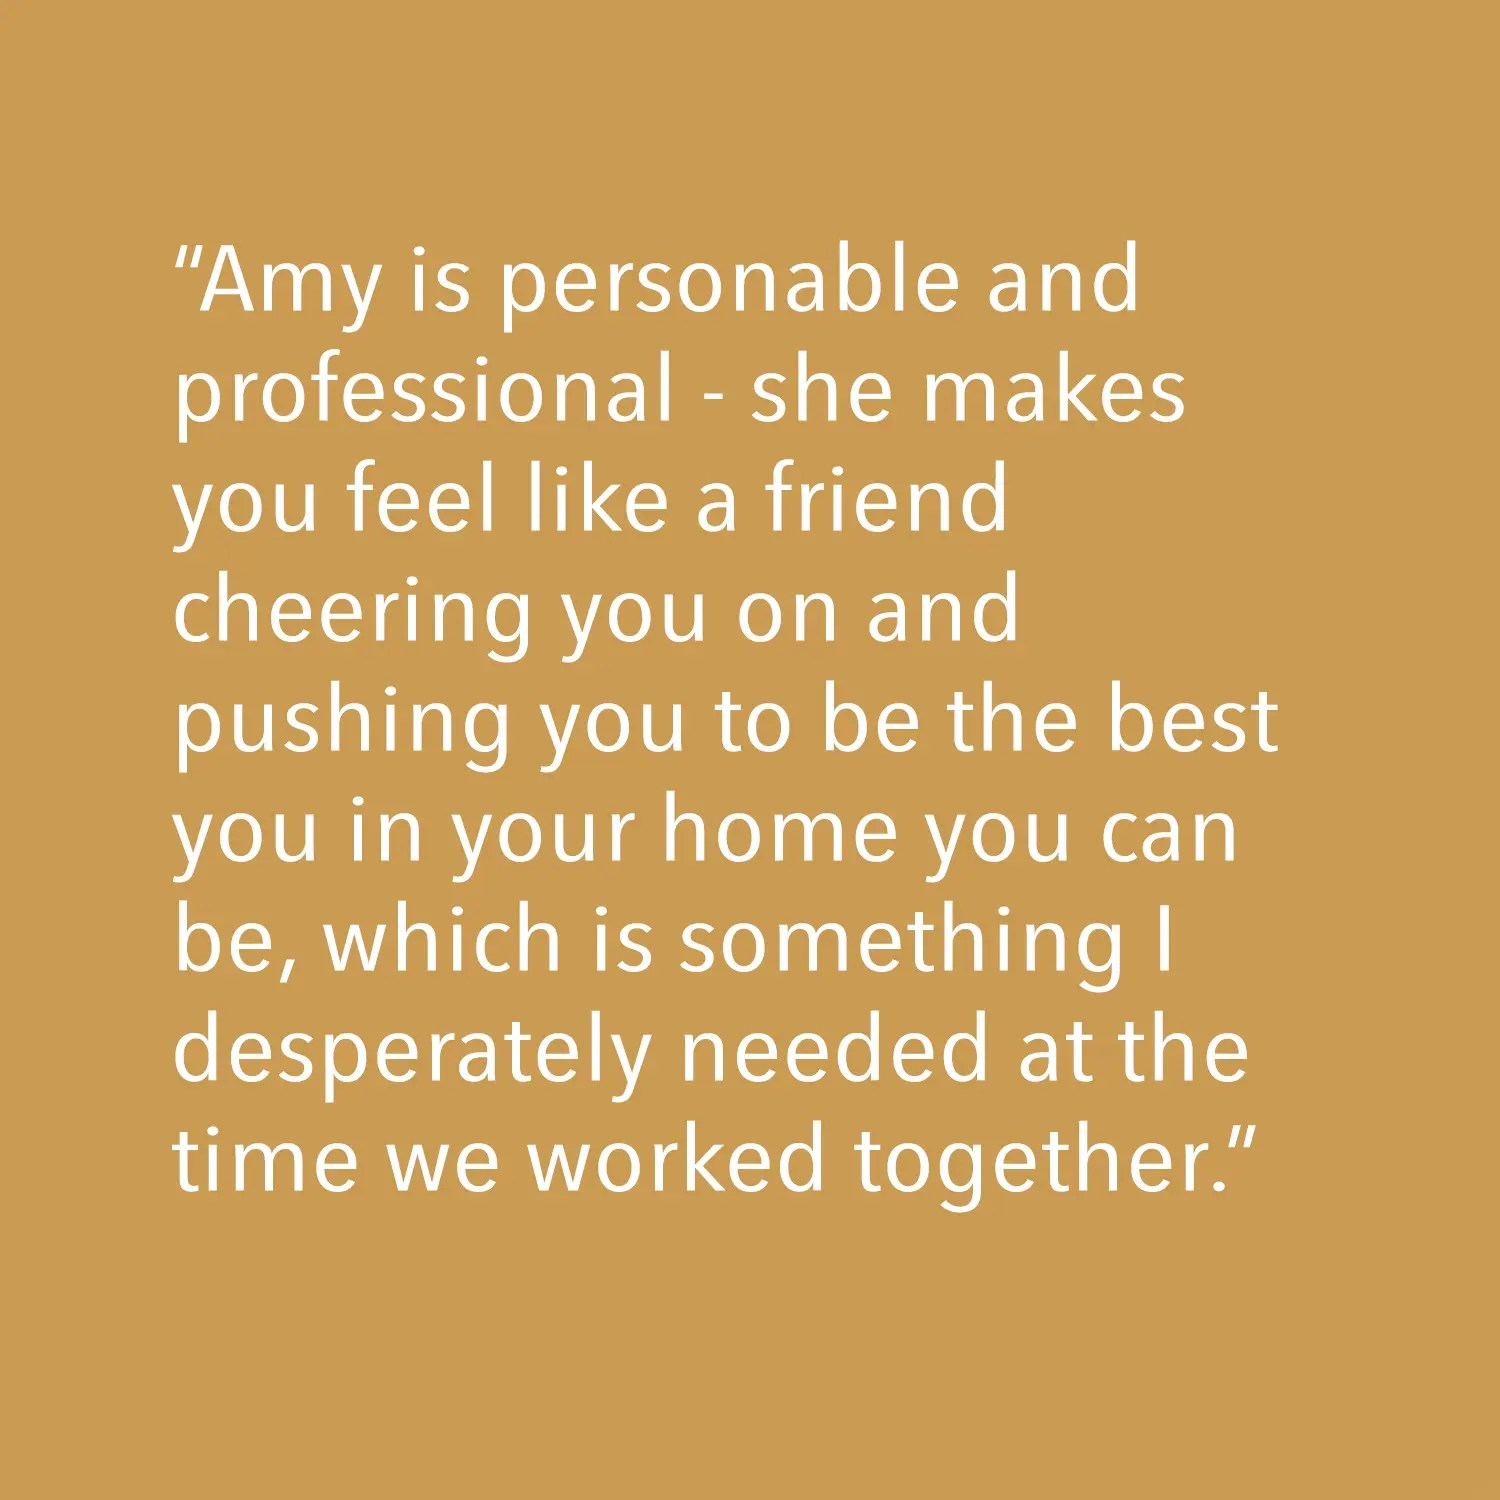 Testimonial - Amy is personal and professional